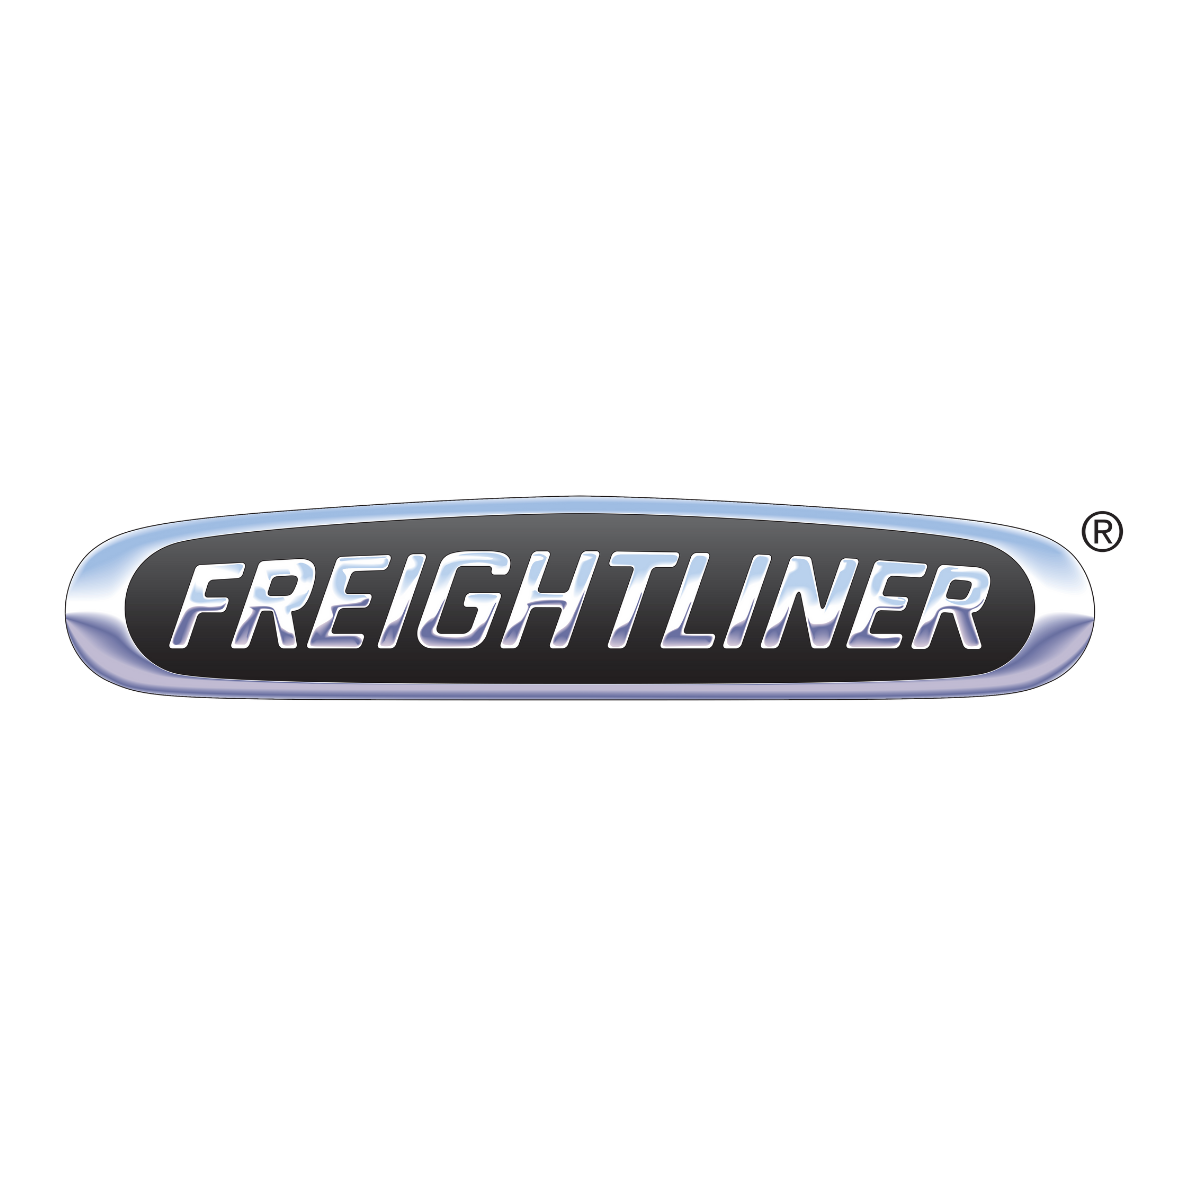 Freightliner Truck and Big Rig Purchasing & Financing